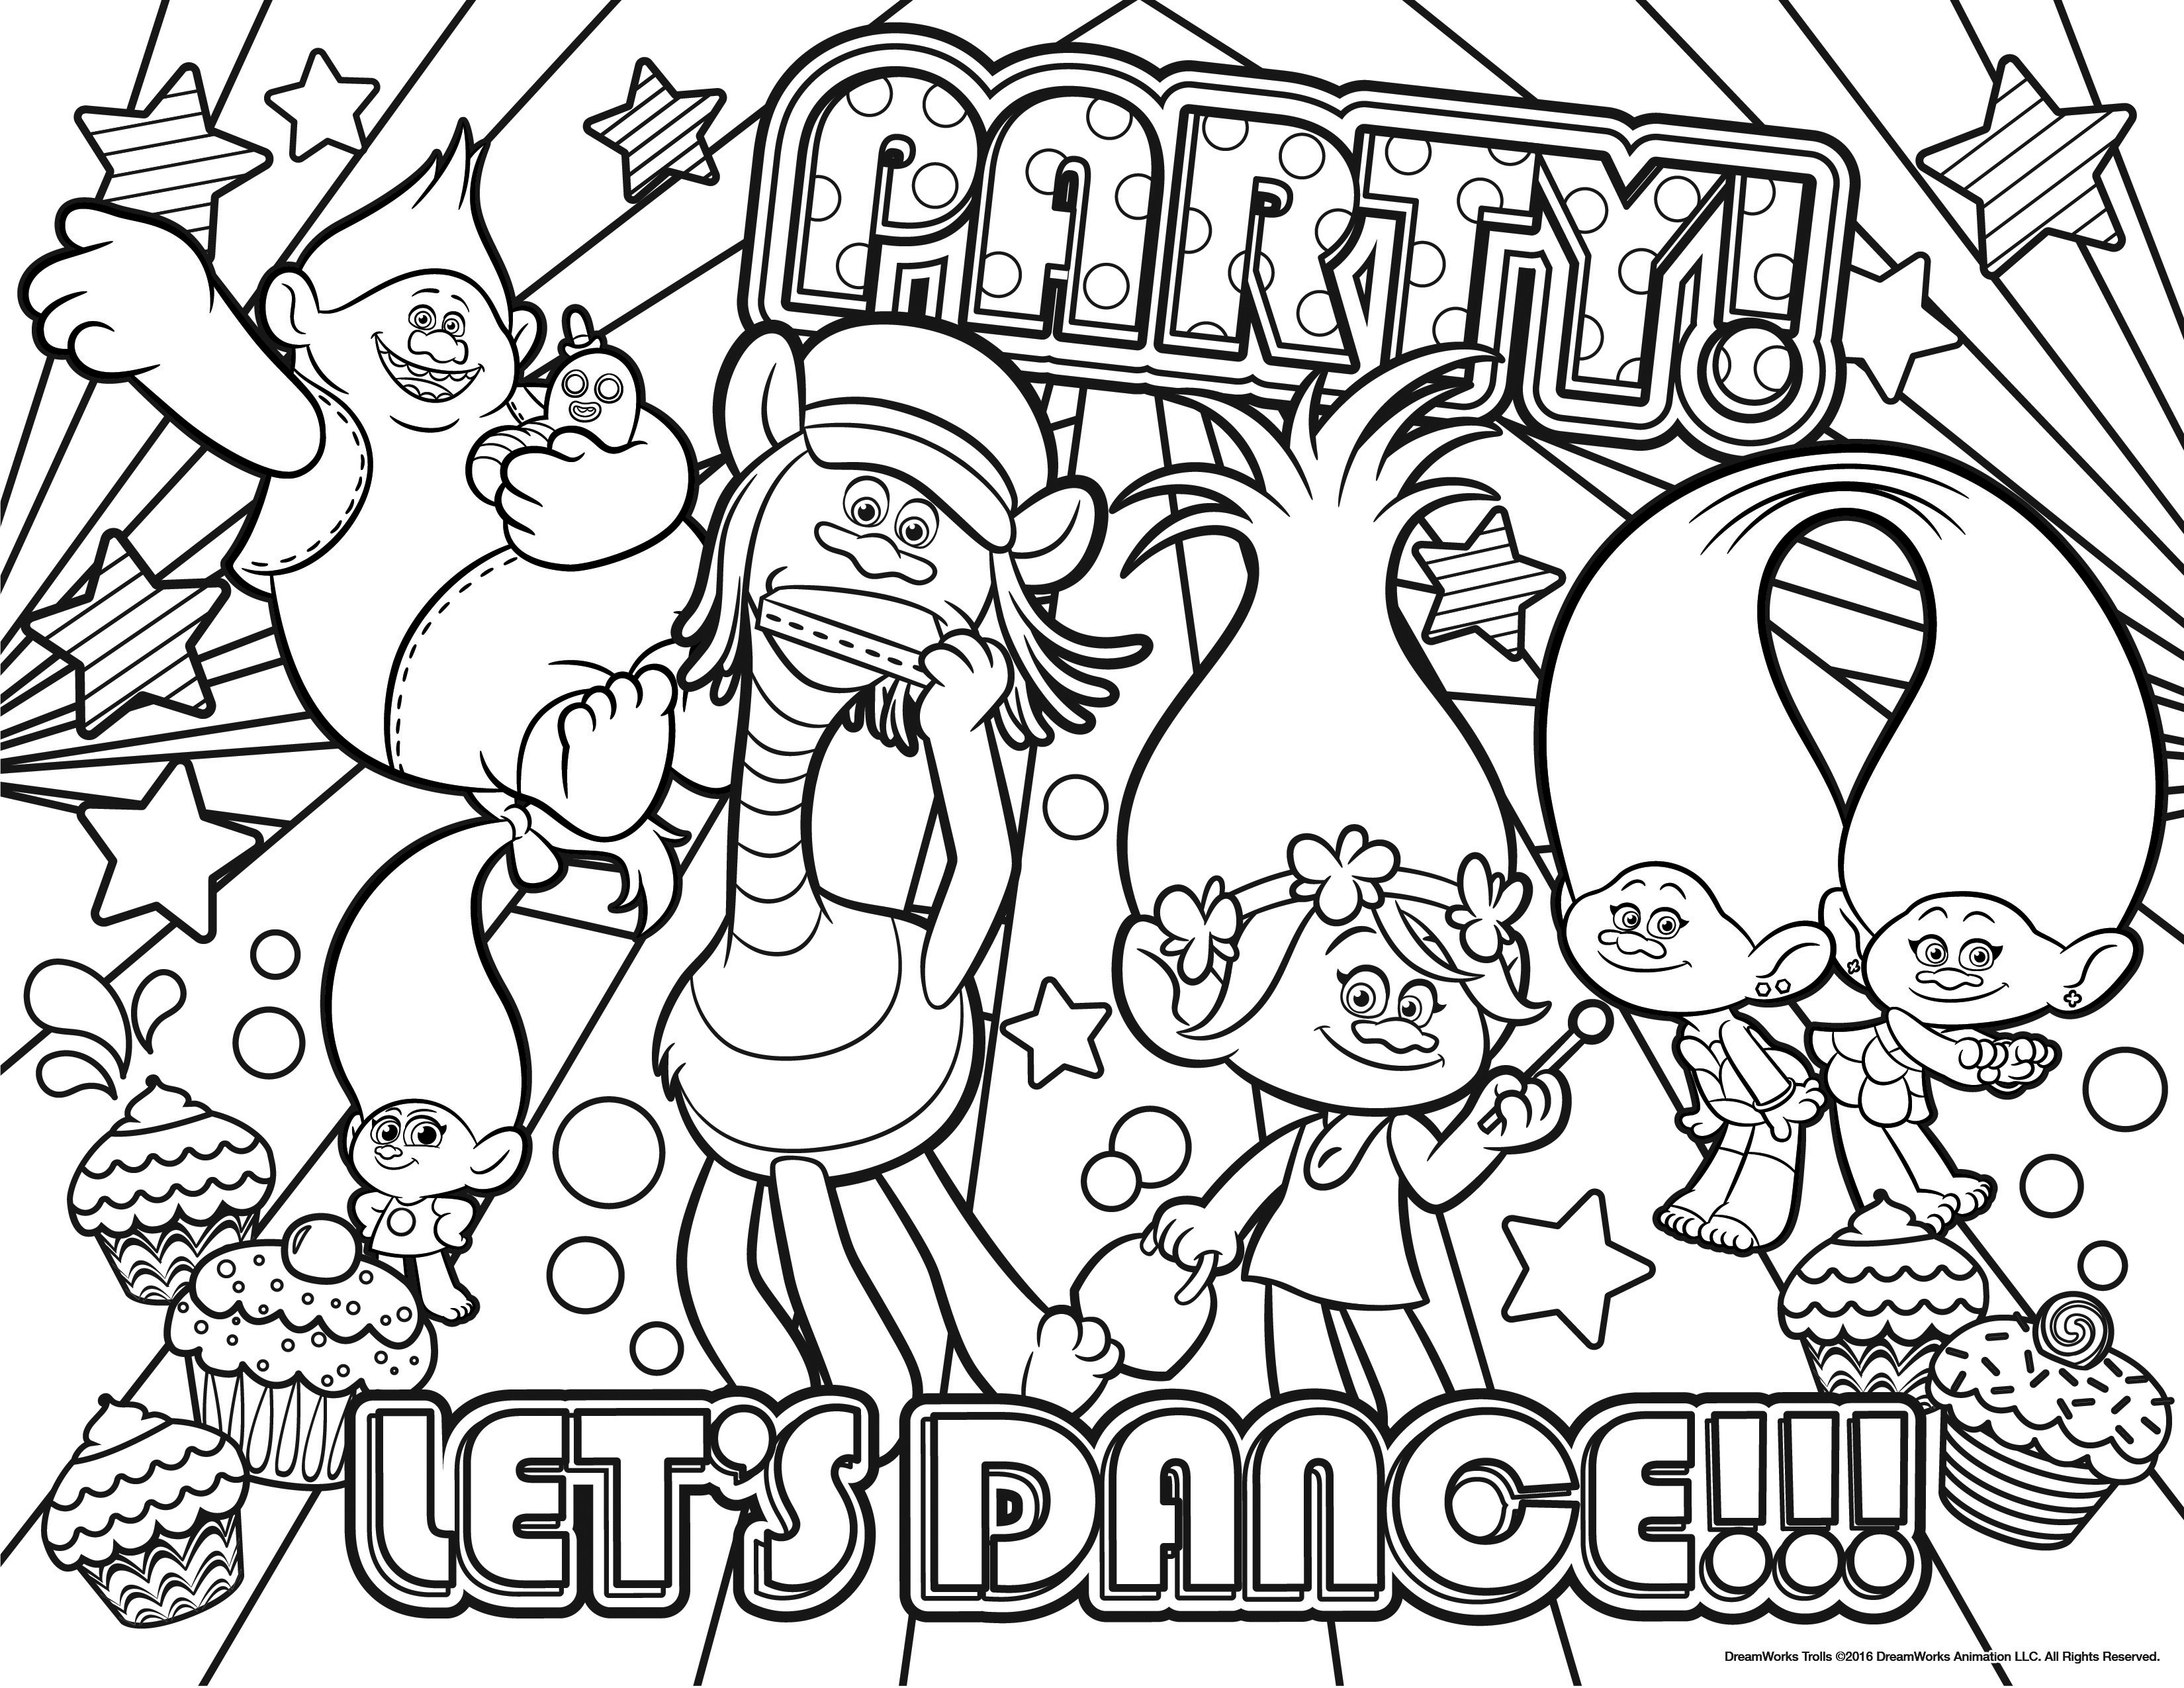 printable pictures to color kids page butterfly coloring pages printable colouring color to printable pictures